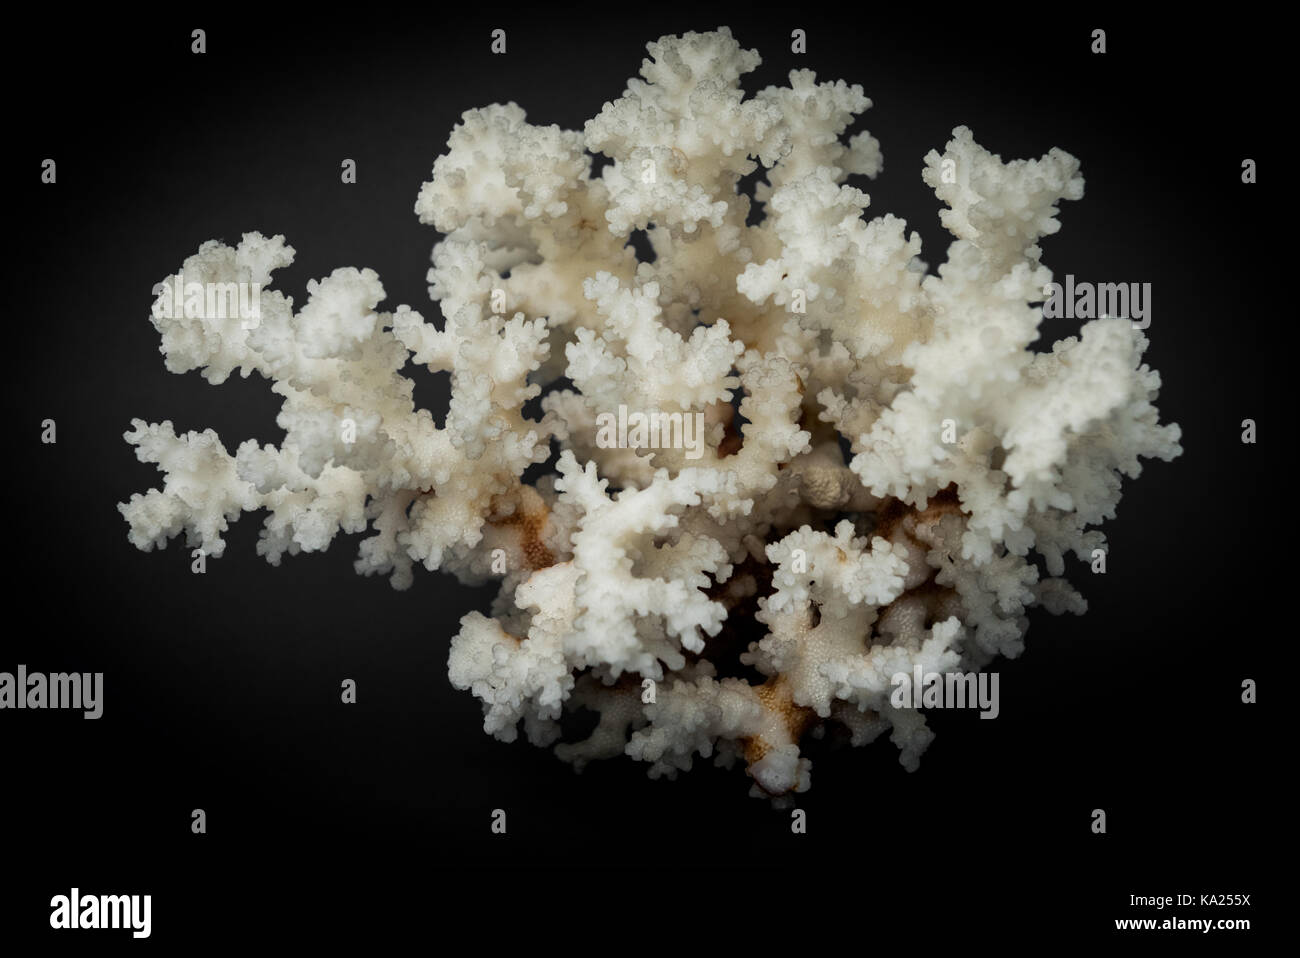 Coral - Stock Image